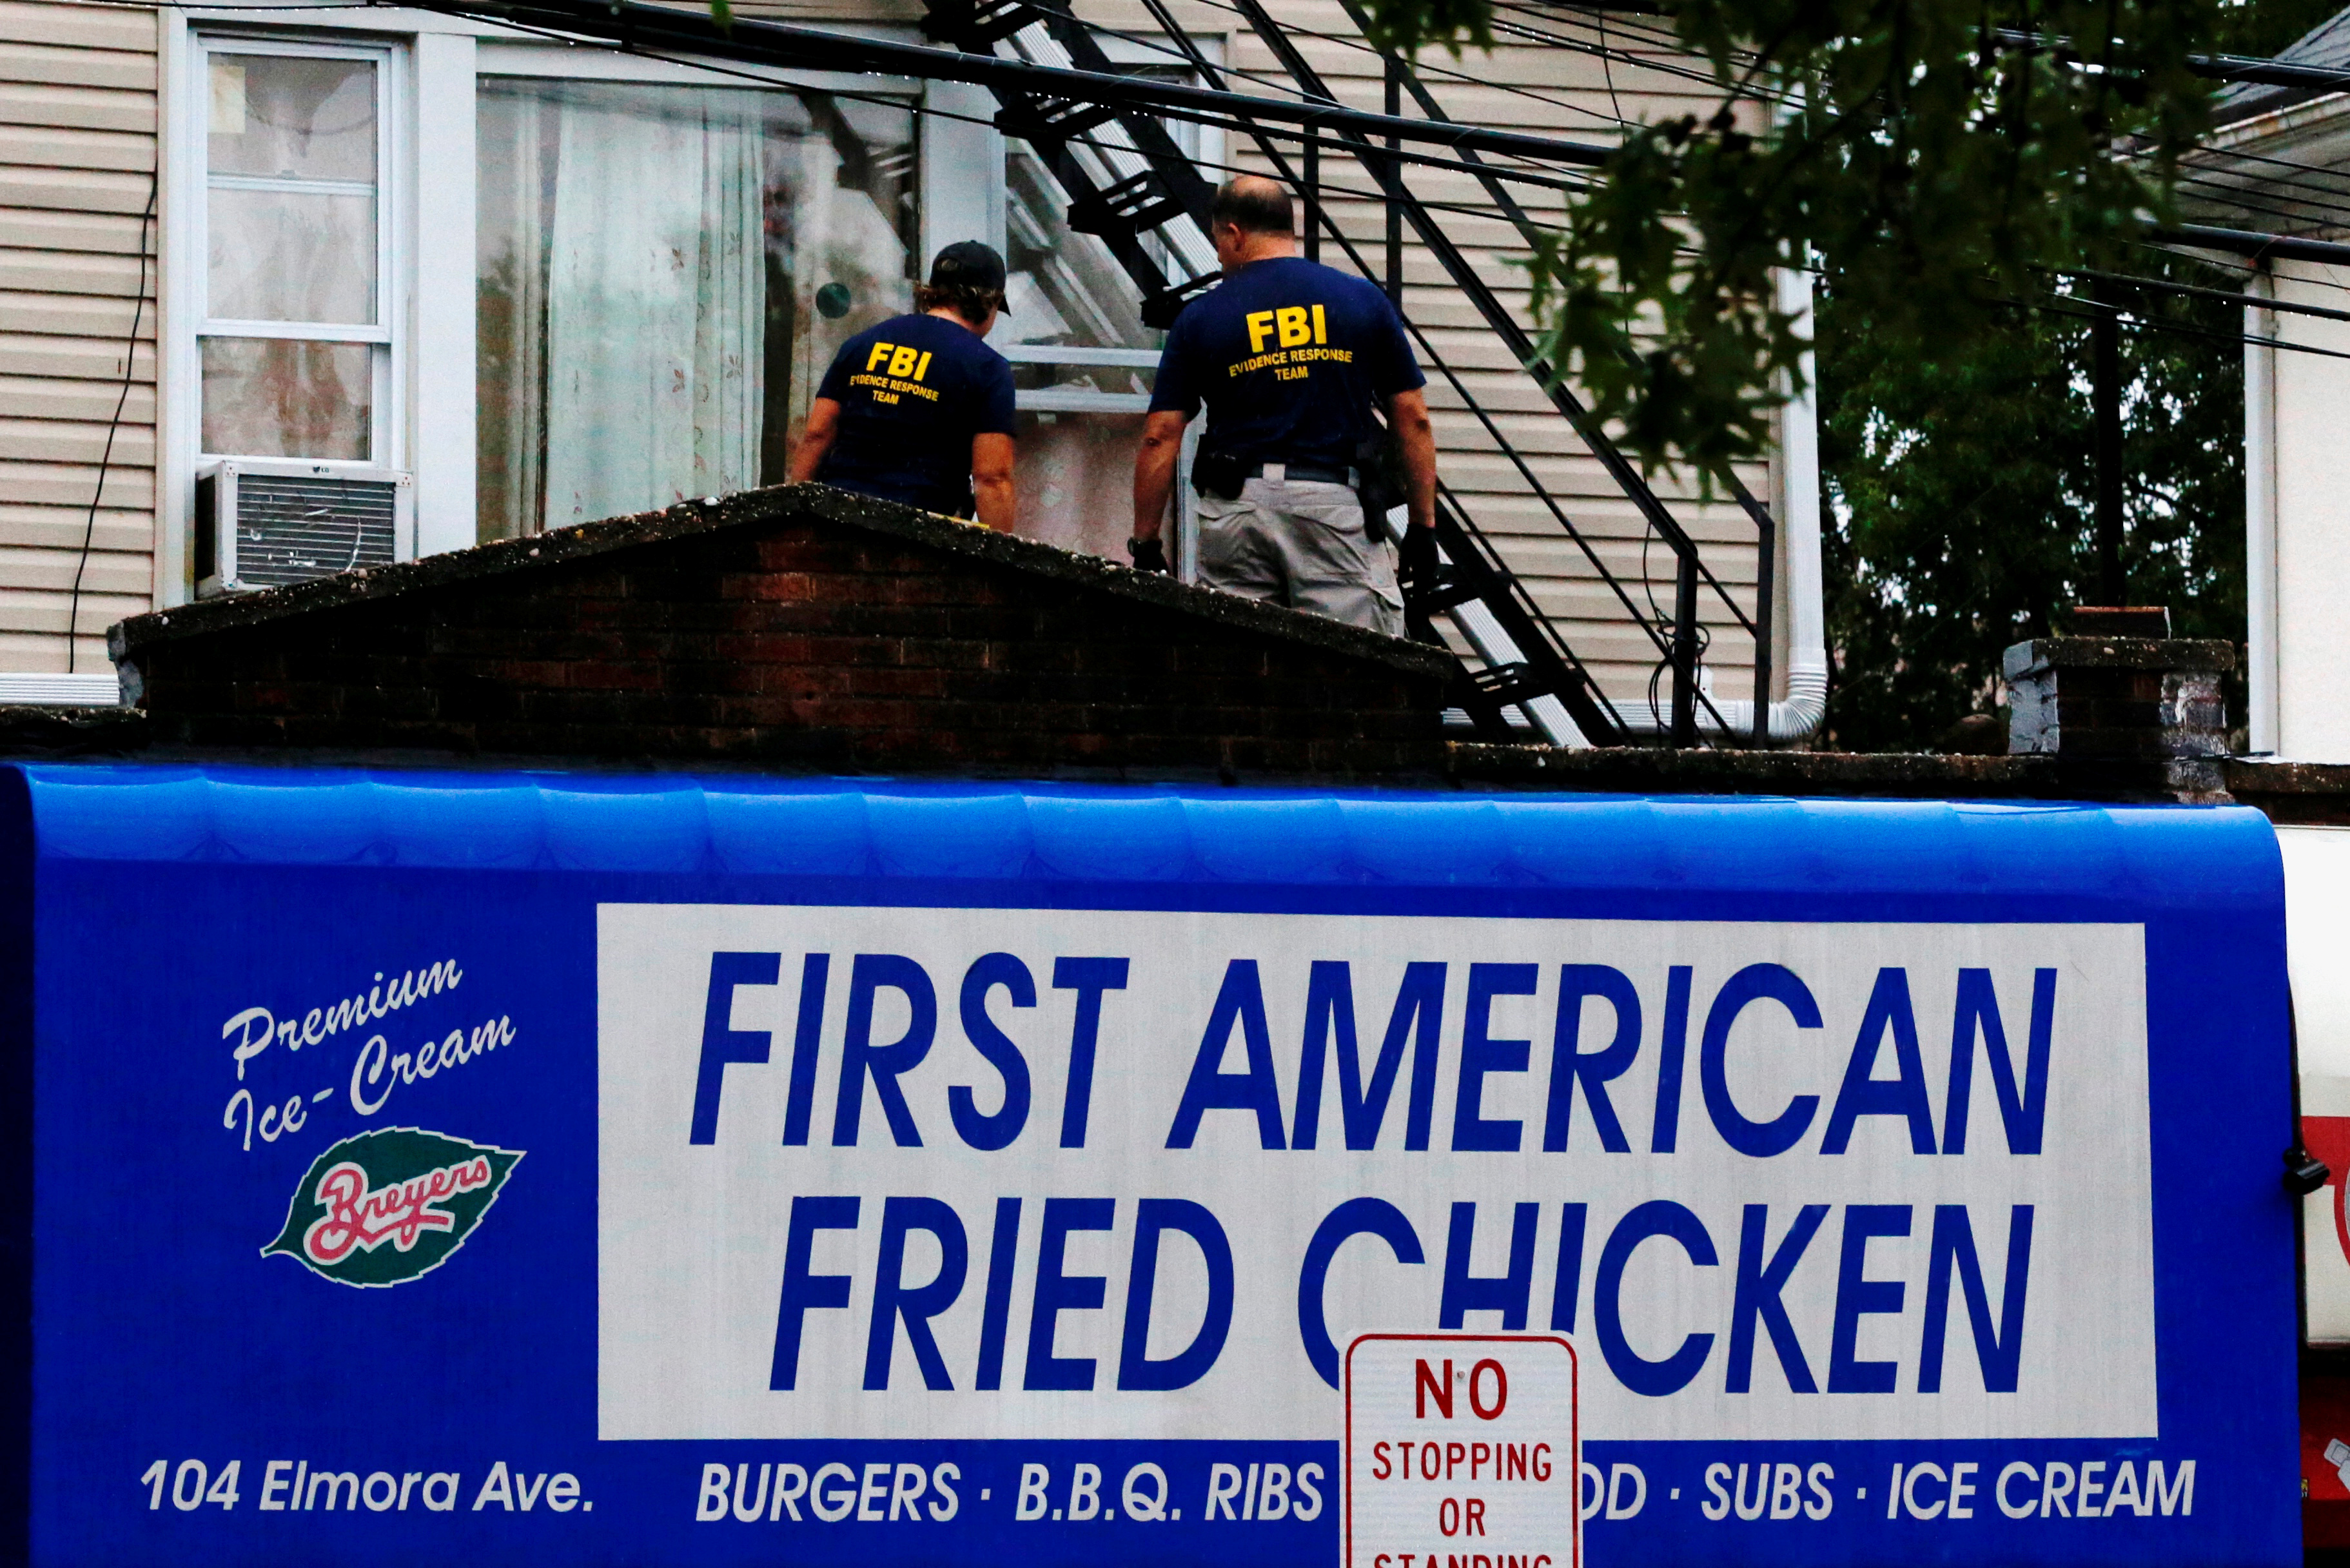 Federal Bureau of Investigation personnel search an address during an investigation into Ahmad Khan Rahami, who was wanted for questioning in an explosion in New York, which authorities believe is linked to the explosive devices found in New Jersey, ...